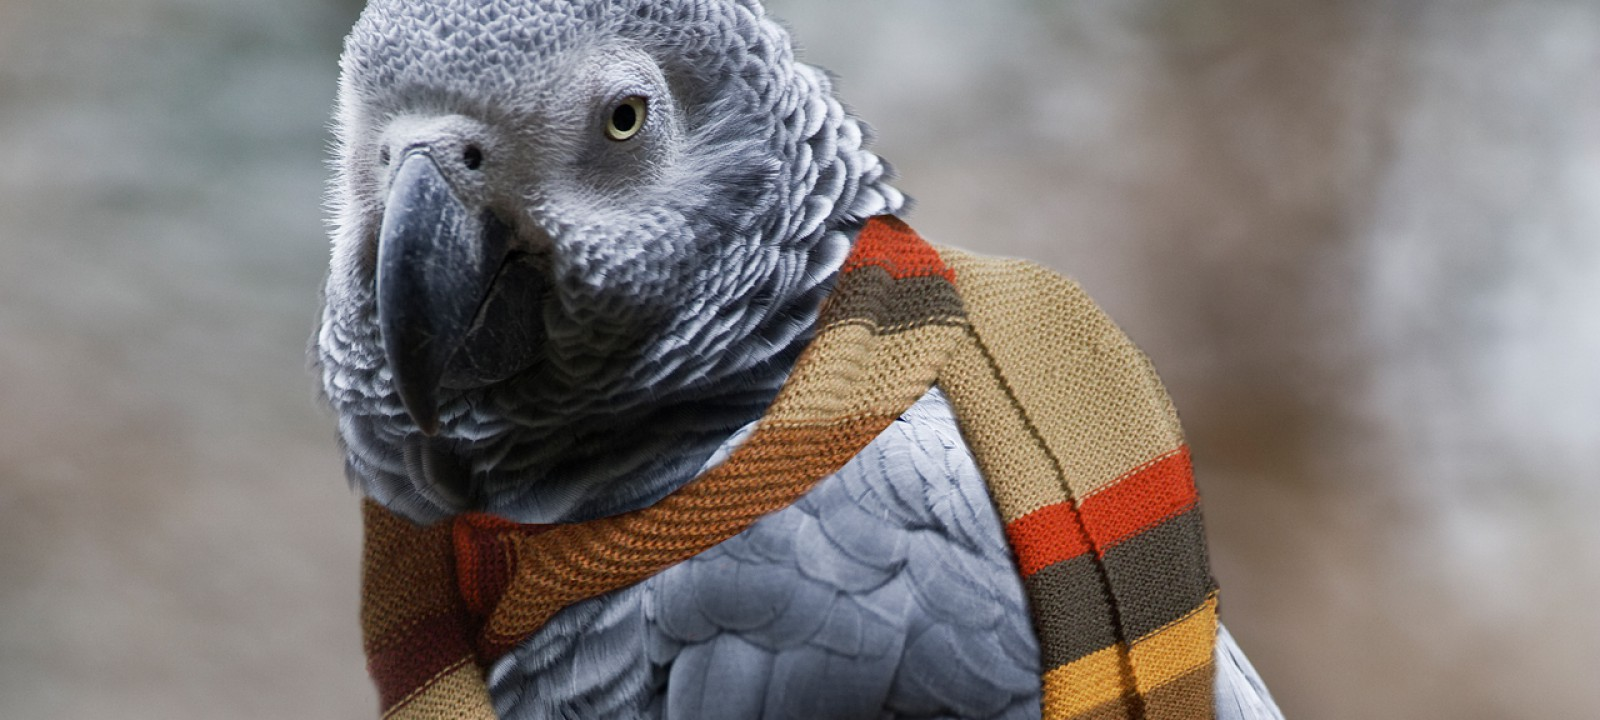 An African grey parrot in the Fourth Doctor's scarf (Pic: Ronaldo Schemidt/Getty Images)